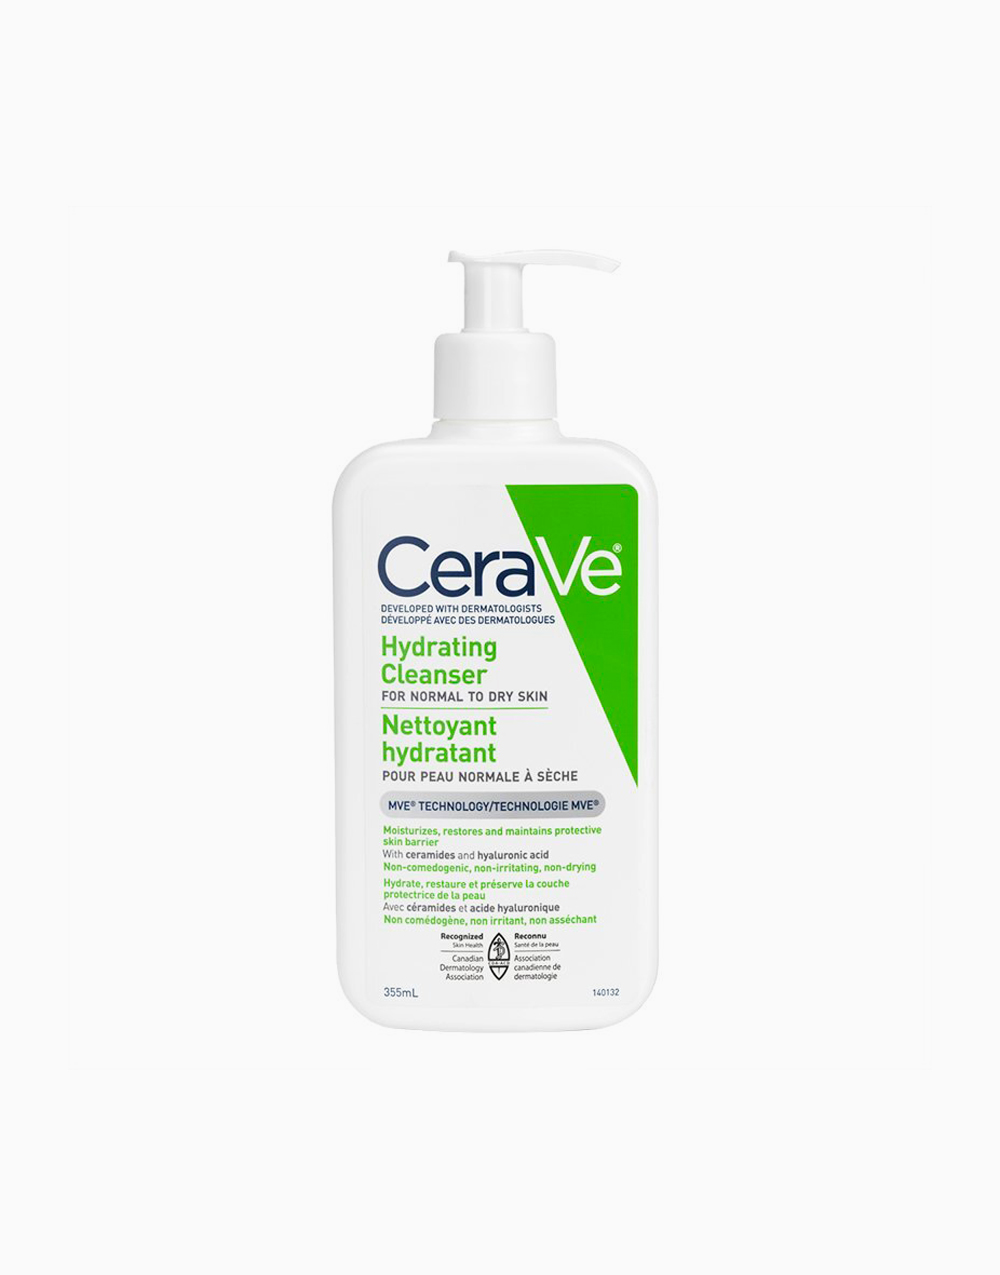 Hydrating Cleanser (355ml) by CeraVe